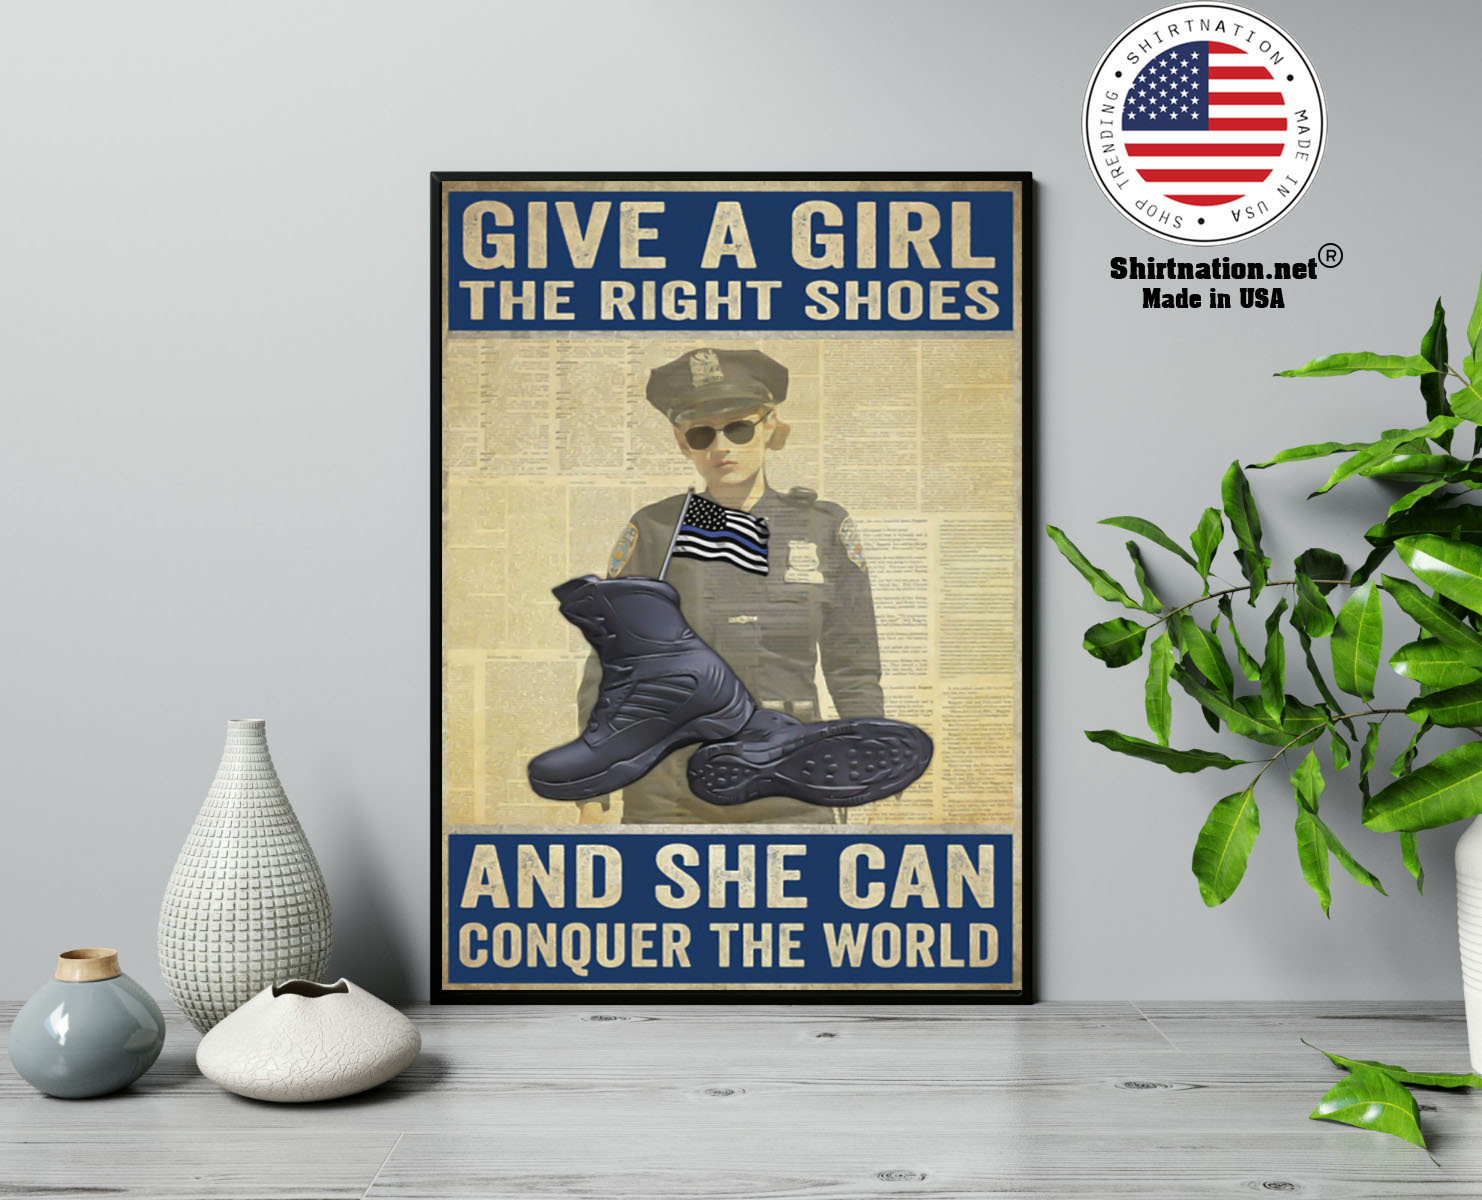 Police give a girl the right shoes and she can conquer the world poster 13